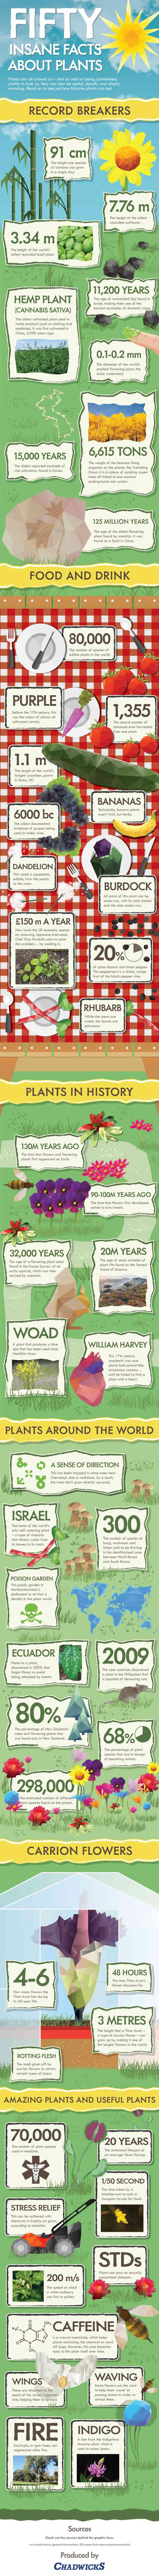 50 facts about plants